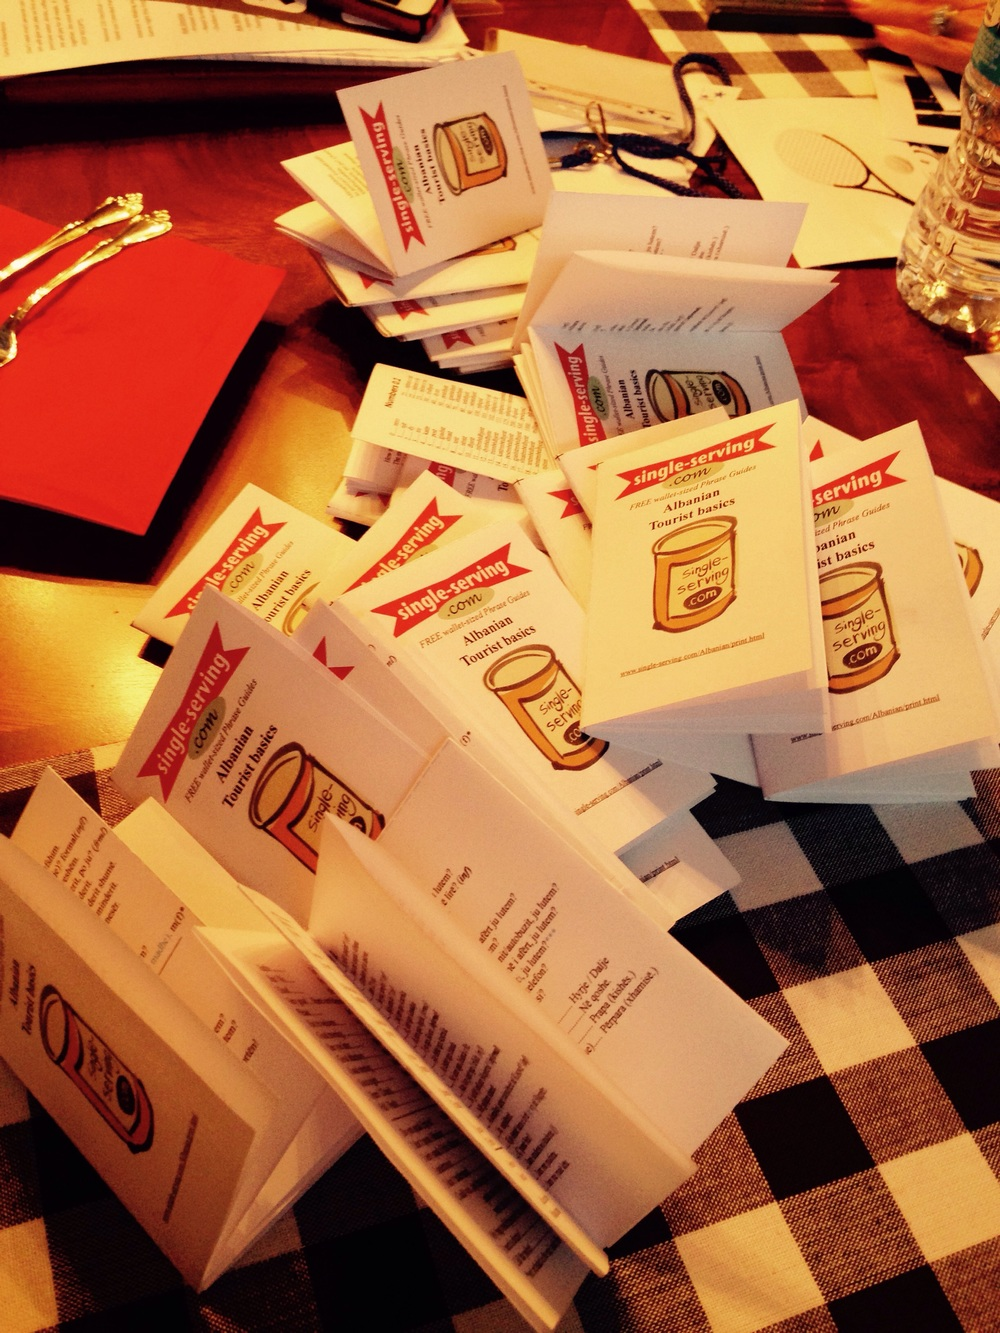 We folded a bunch of Albanian pocket language guides. Definitely going to come in handy!